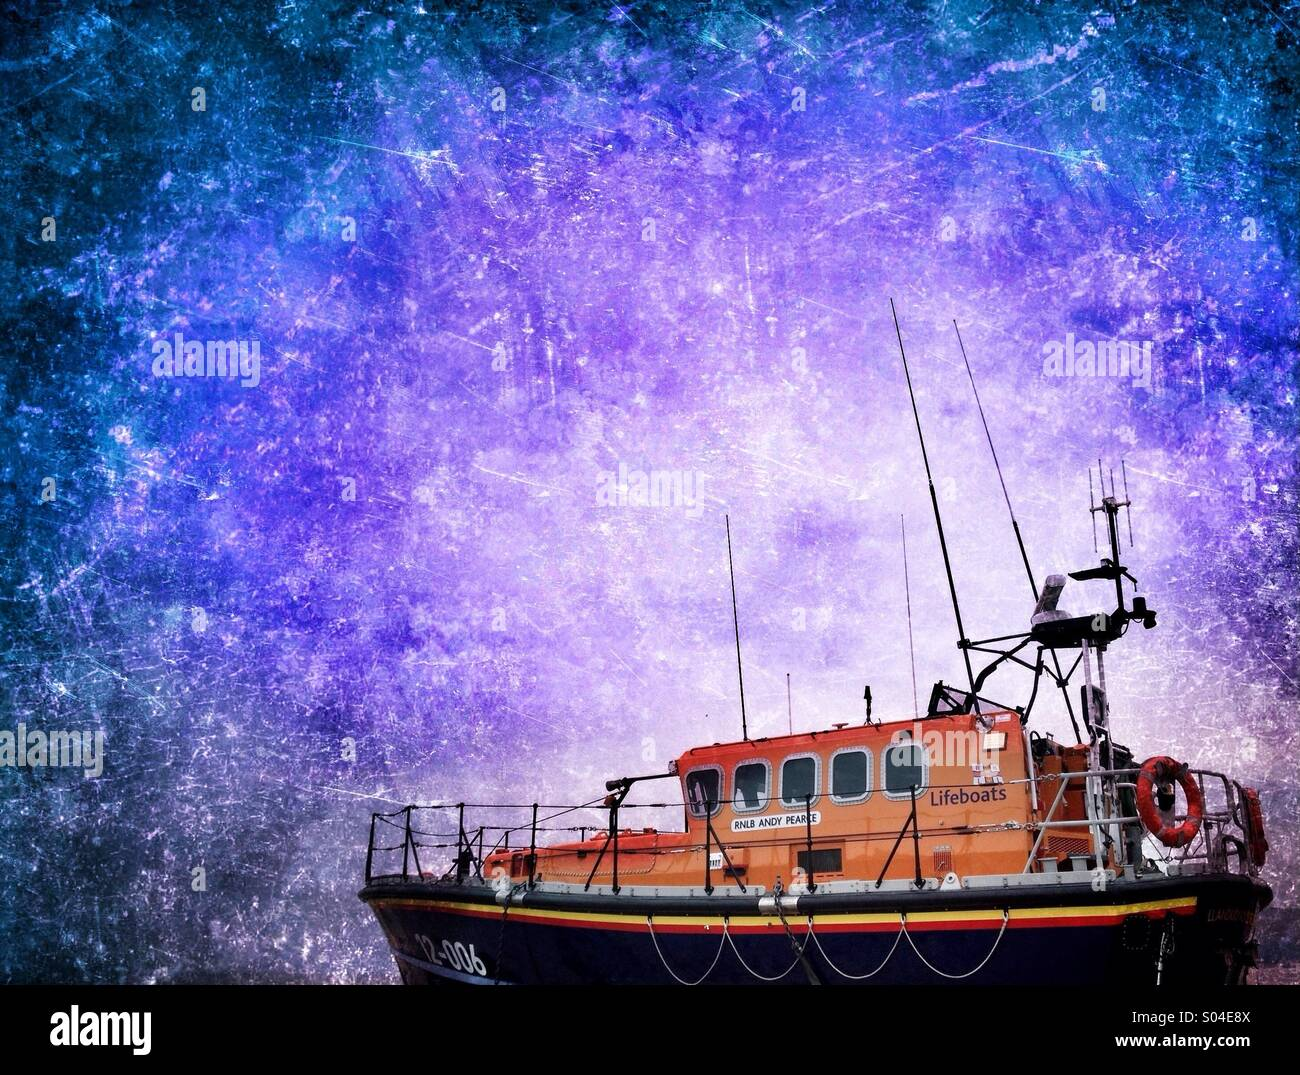 Lifeboat against abstract sky - Stock Image